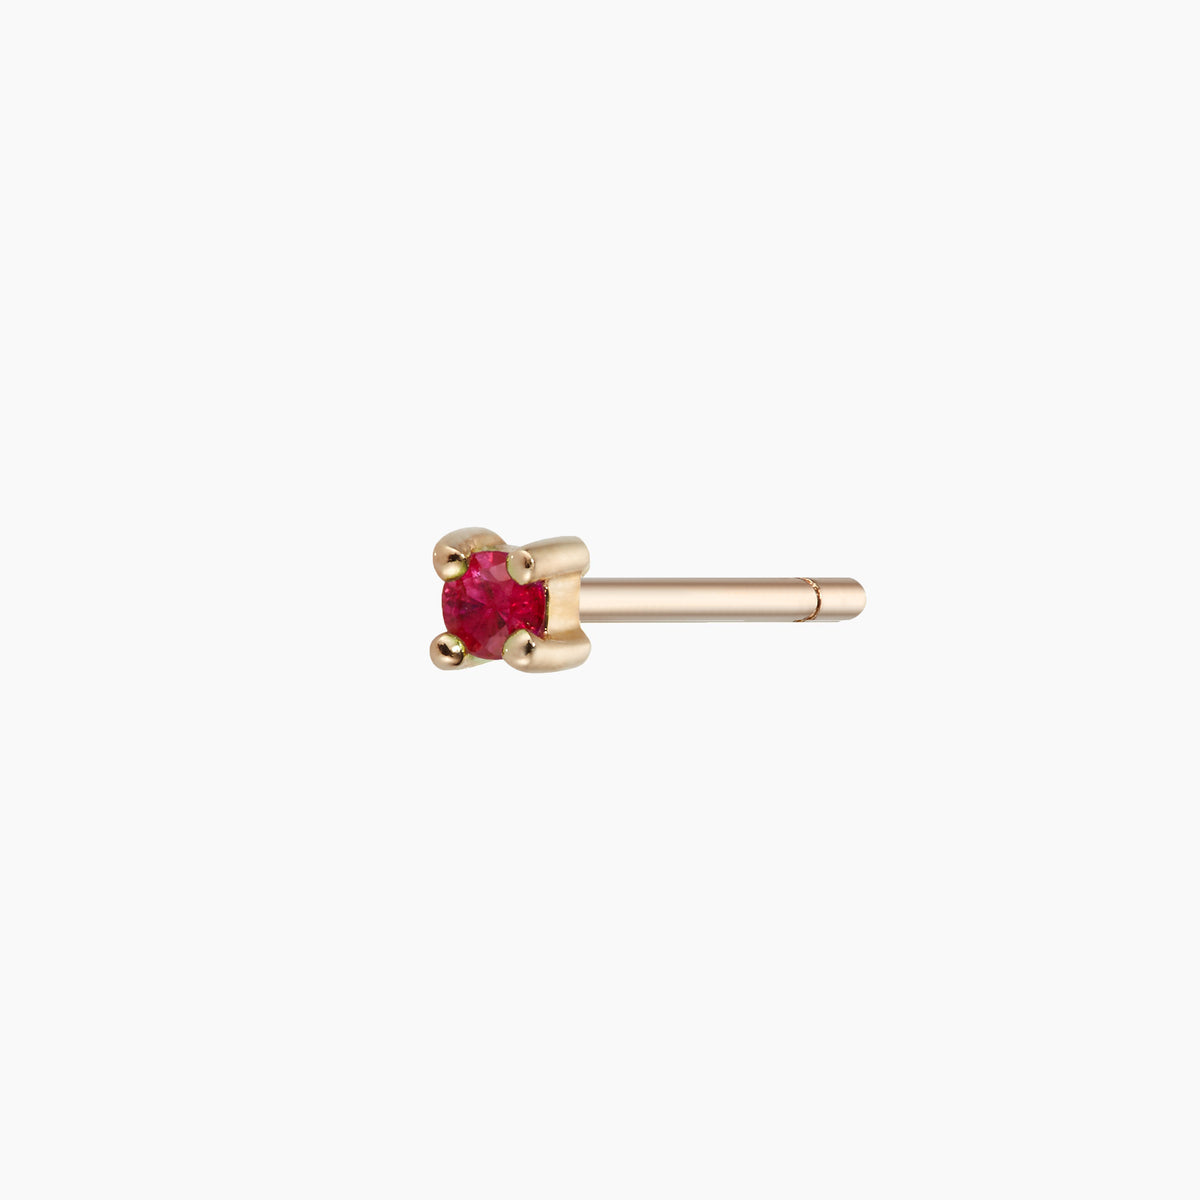 Raspberry Ruby Stud